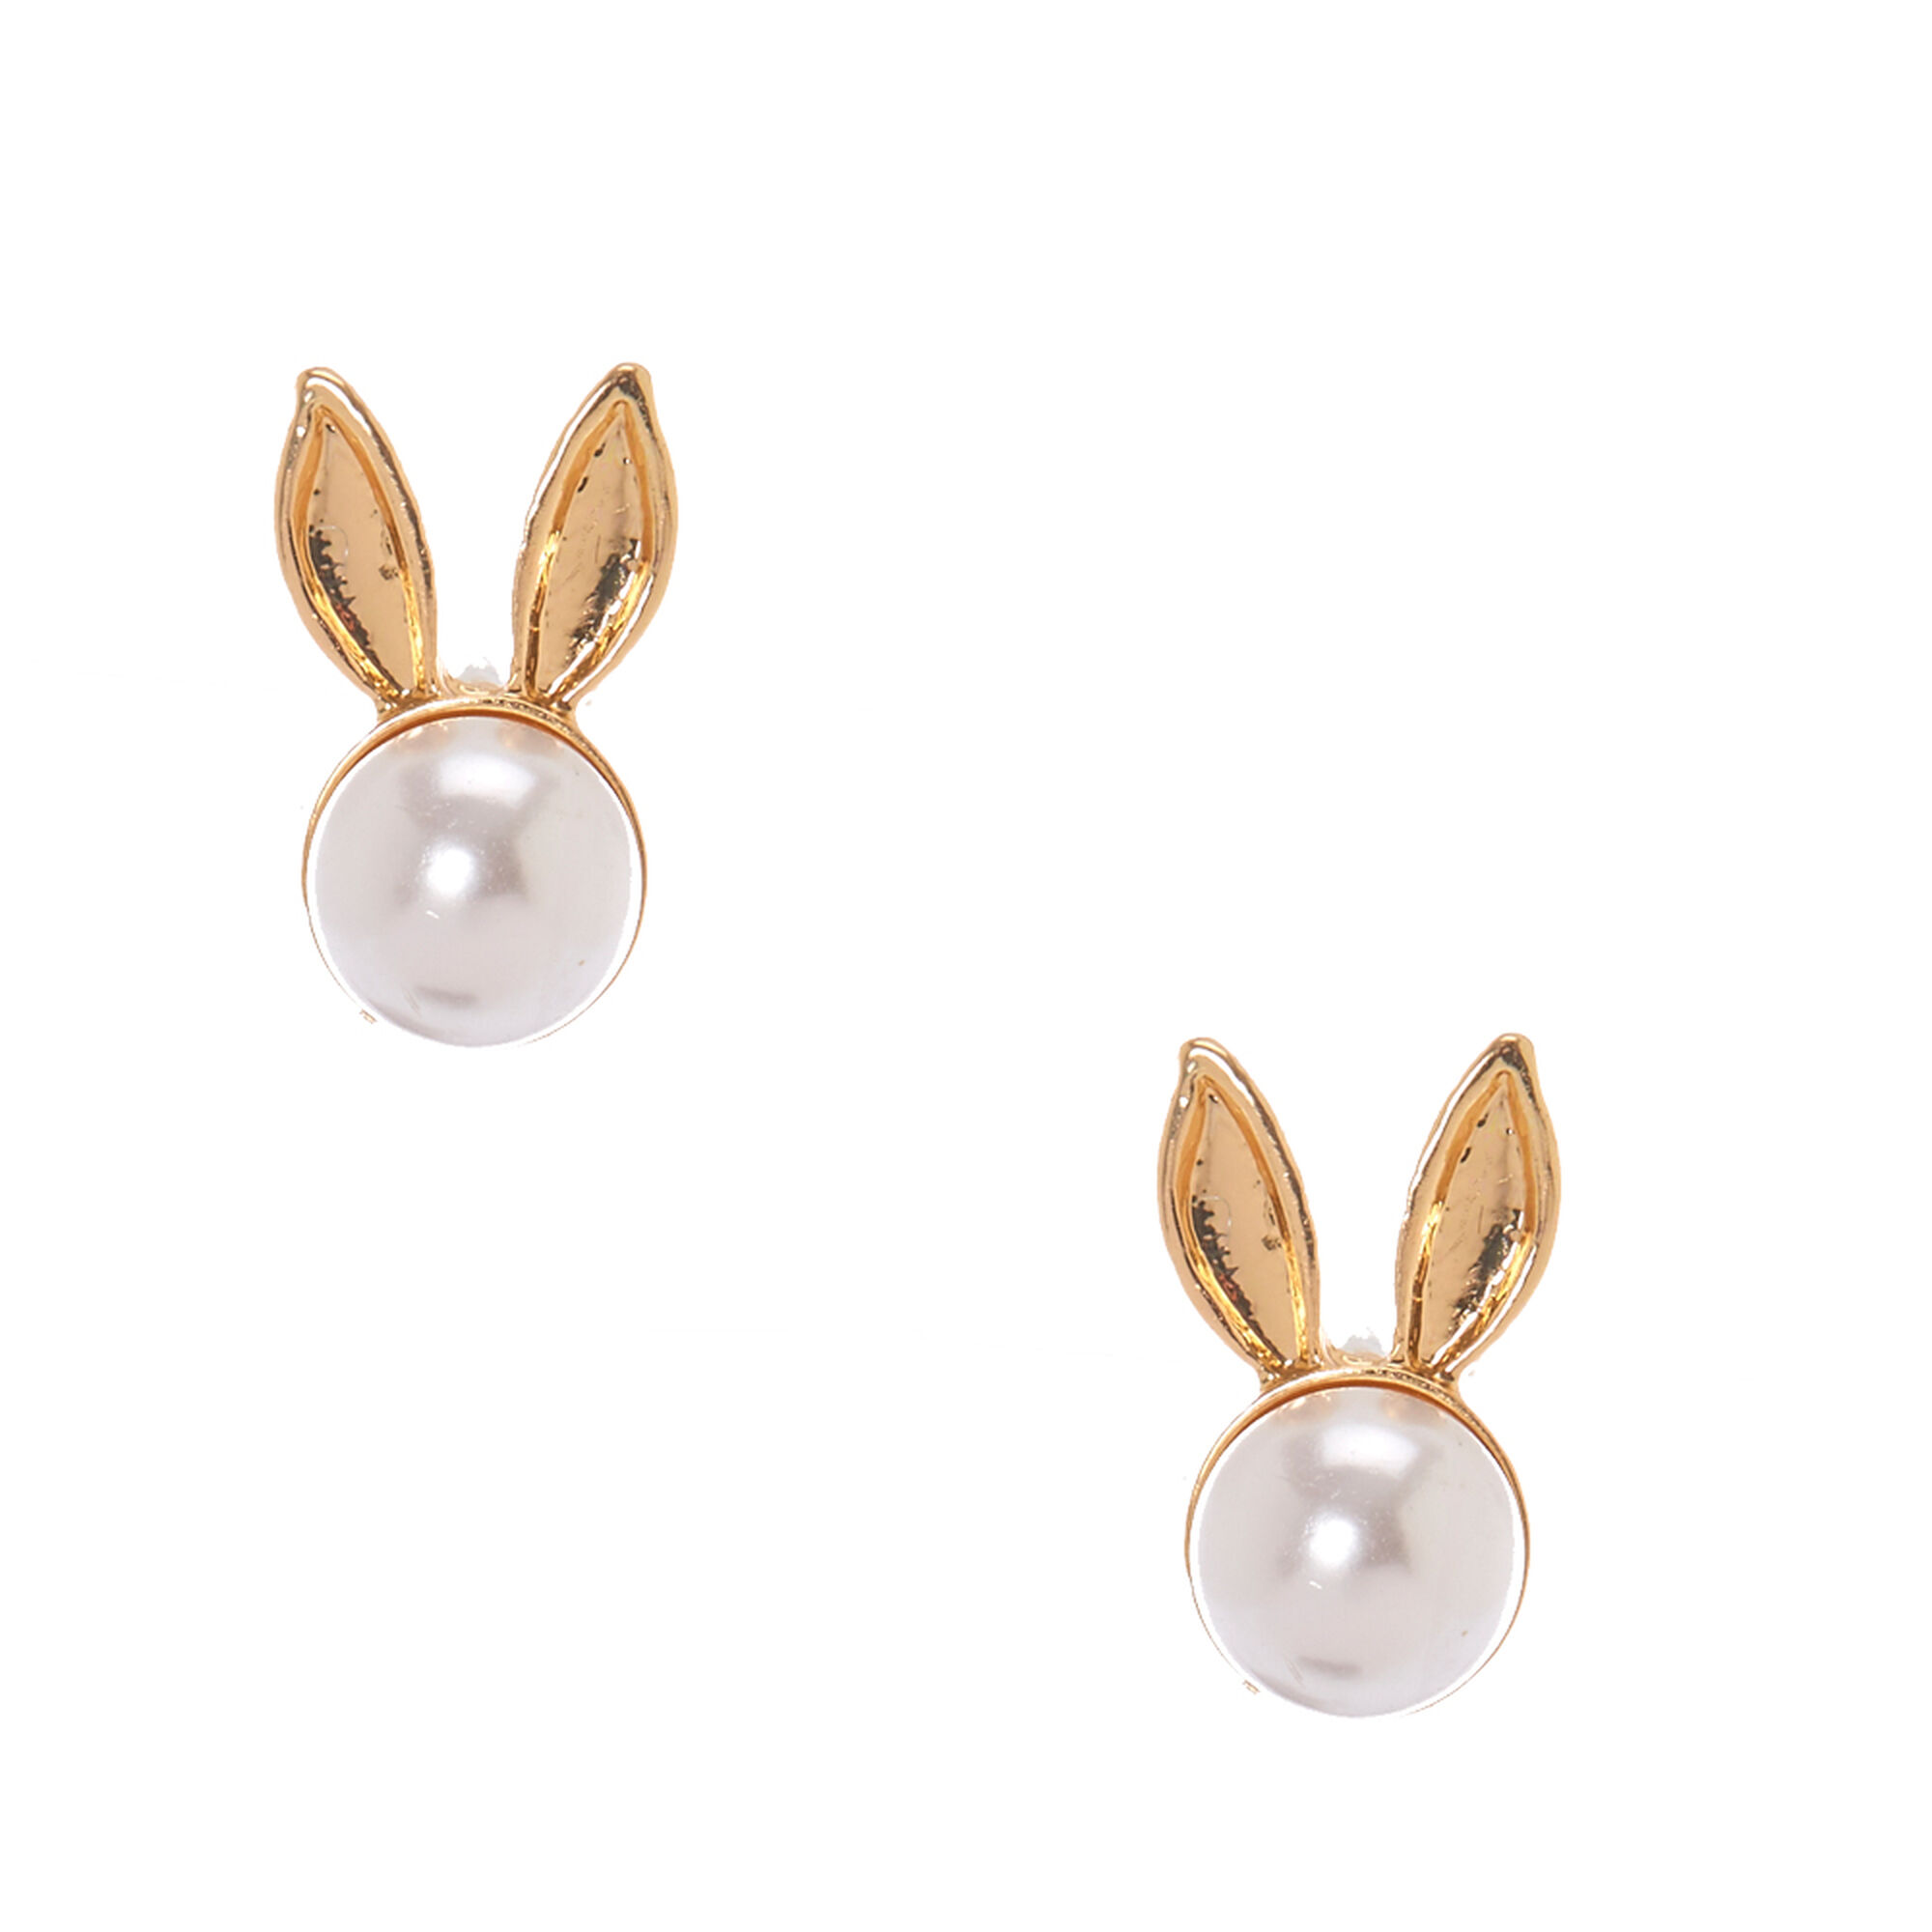 colour millen pearl gb jewellery faux womens silver logo stud earrings accessories karen